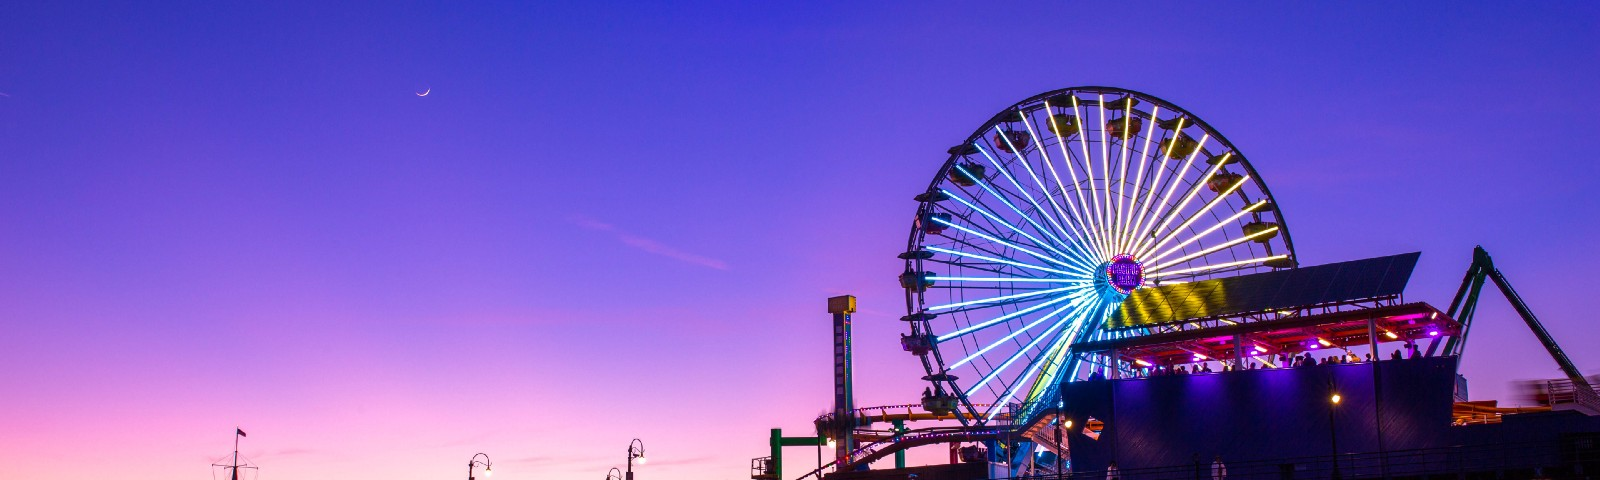 A Ferris wheel in an amusement park during the early evening